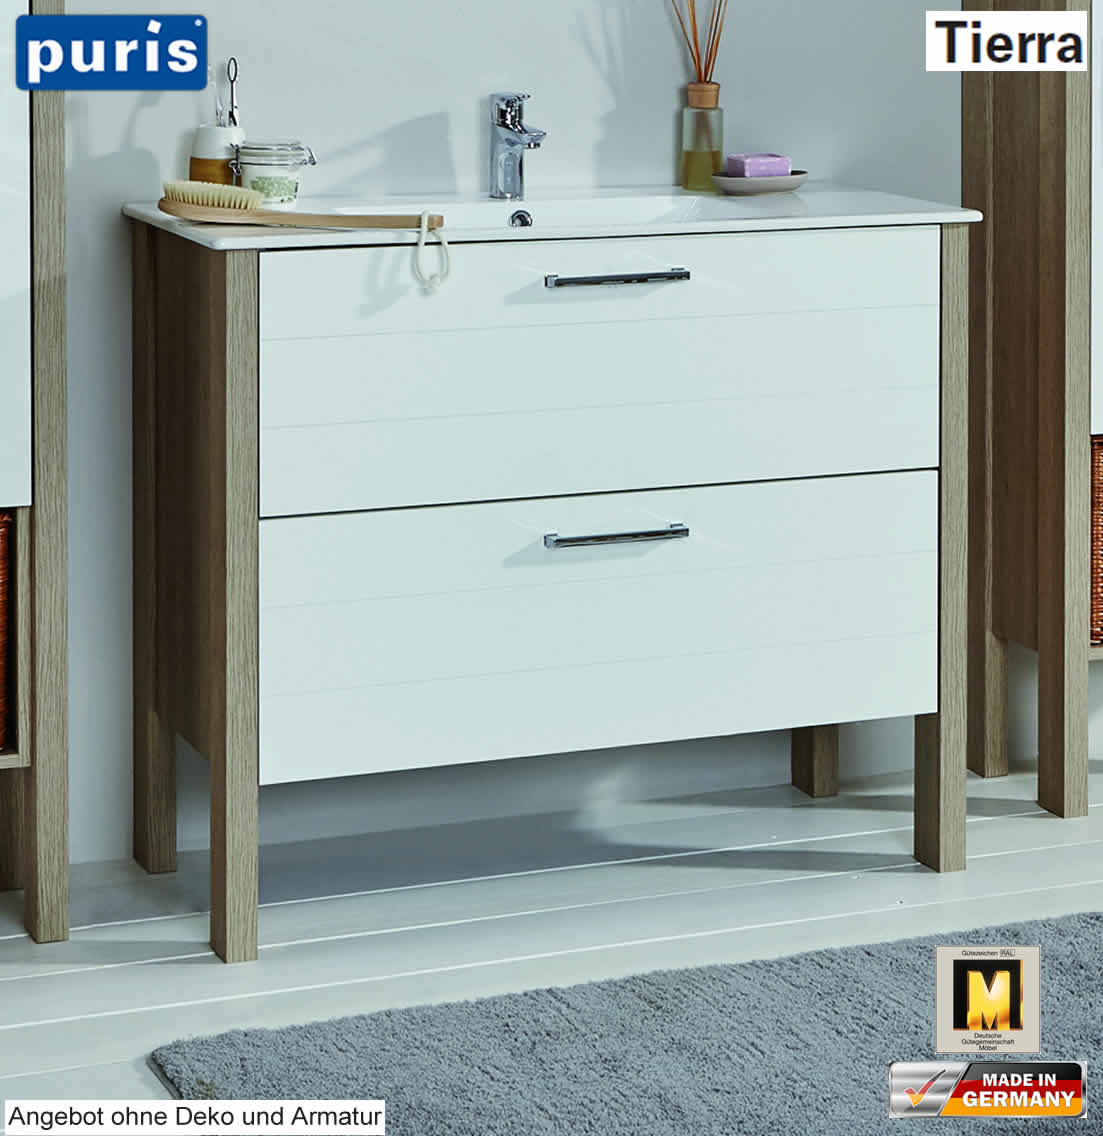 puris tierra waschtisch set 100 cm breite mit keramik wt und 2 ausz gen stehende variante. Black Bedroom Furniture Sets. Home Design Ideas